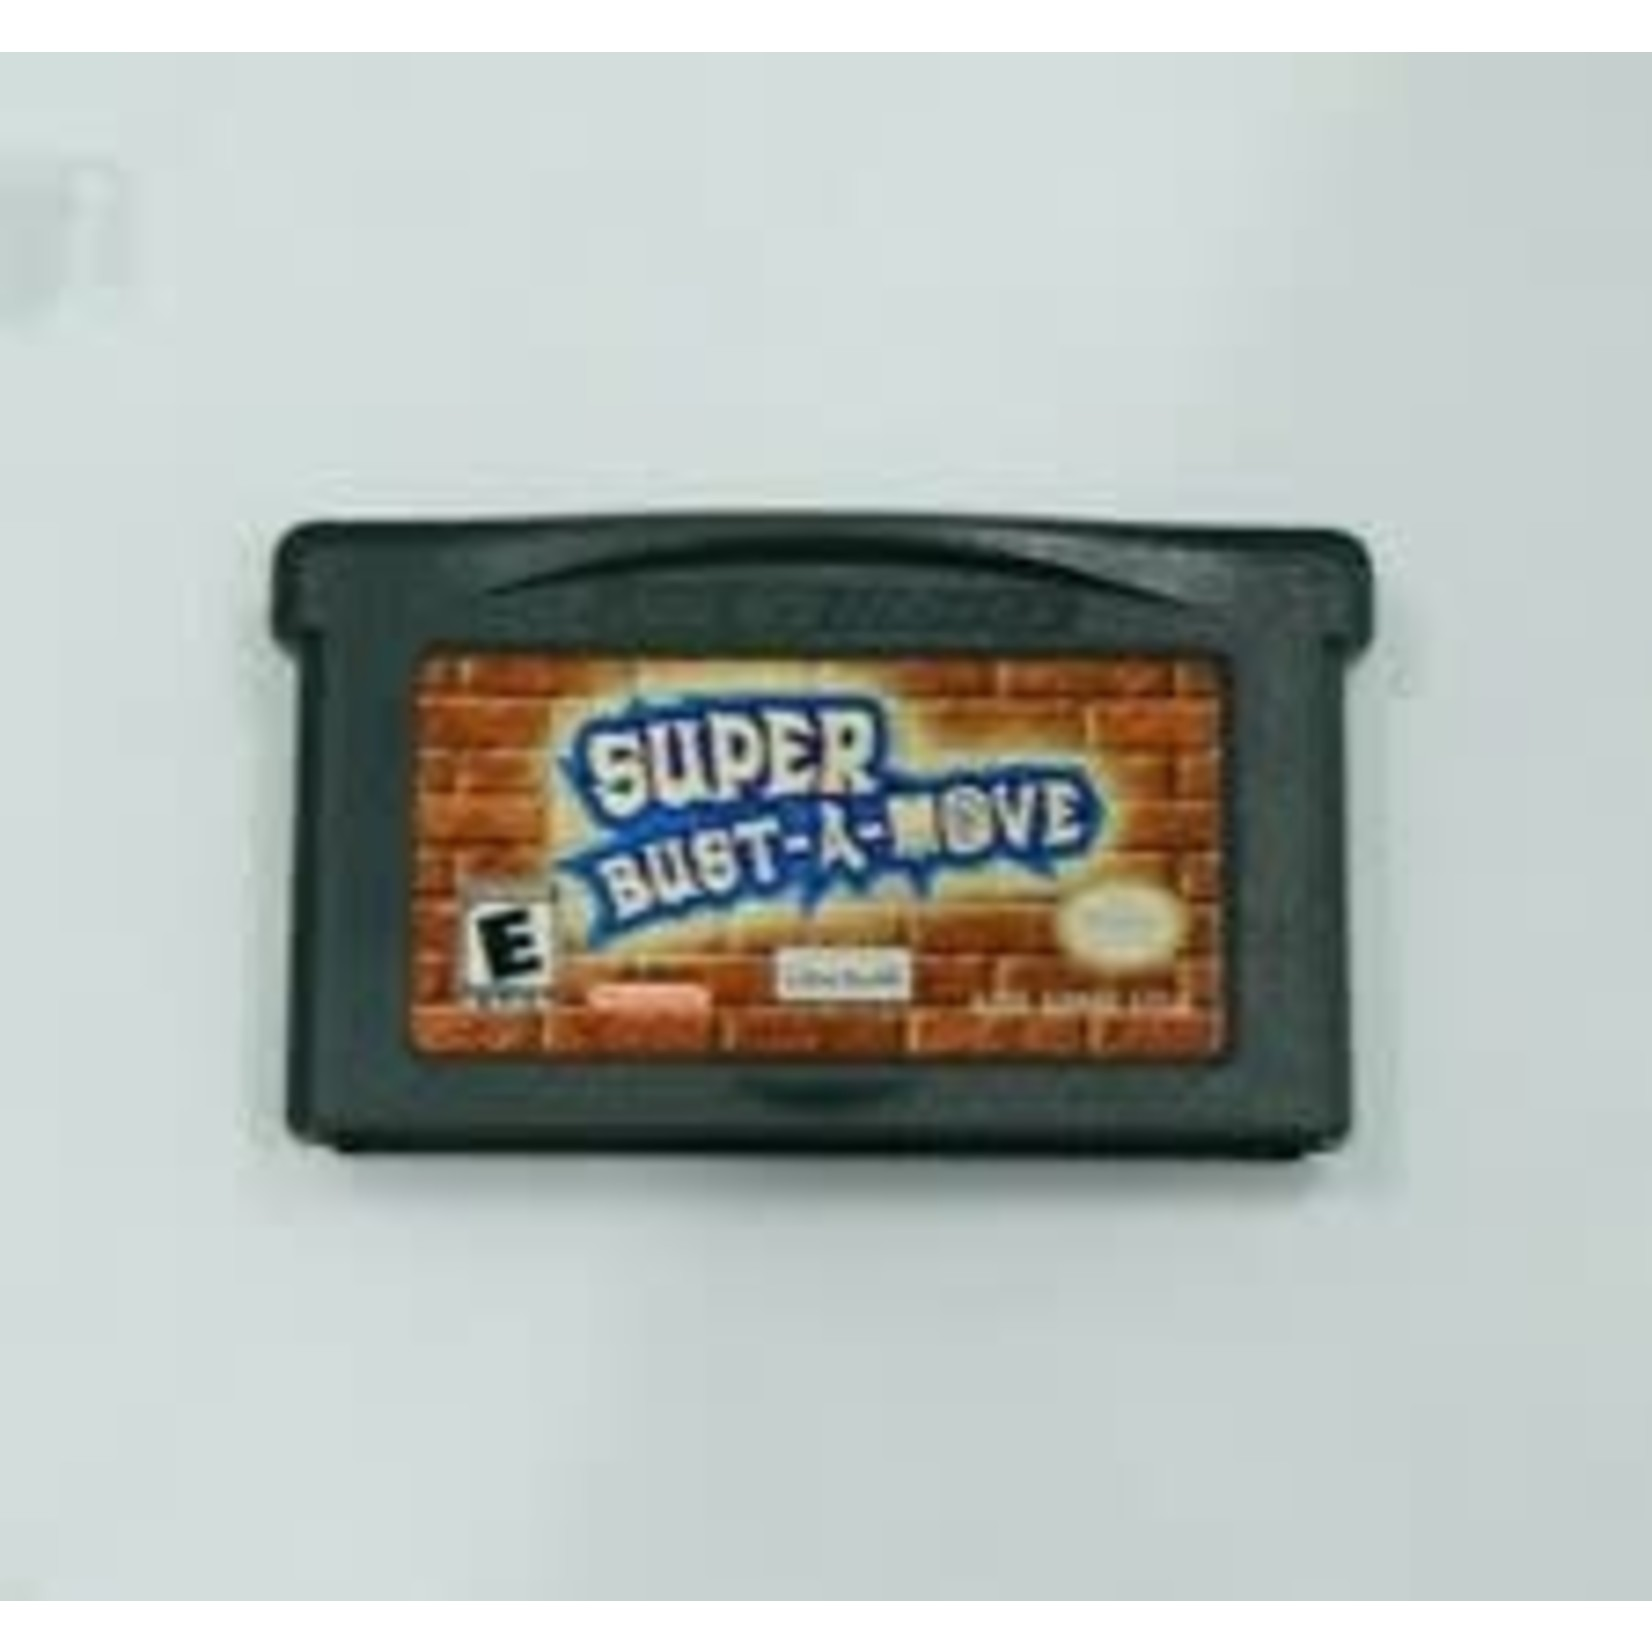 GBAU-Super Bust-A-Move (CART ONLY)